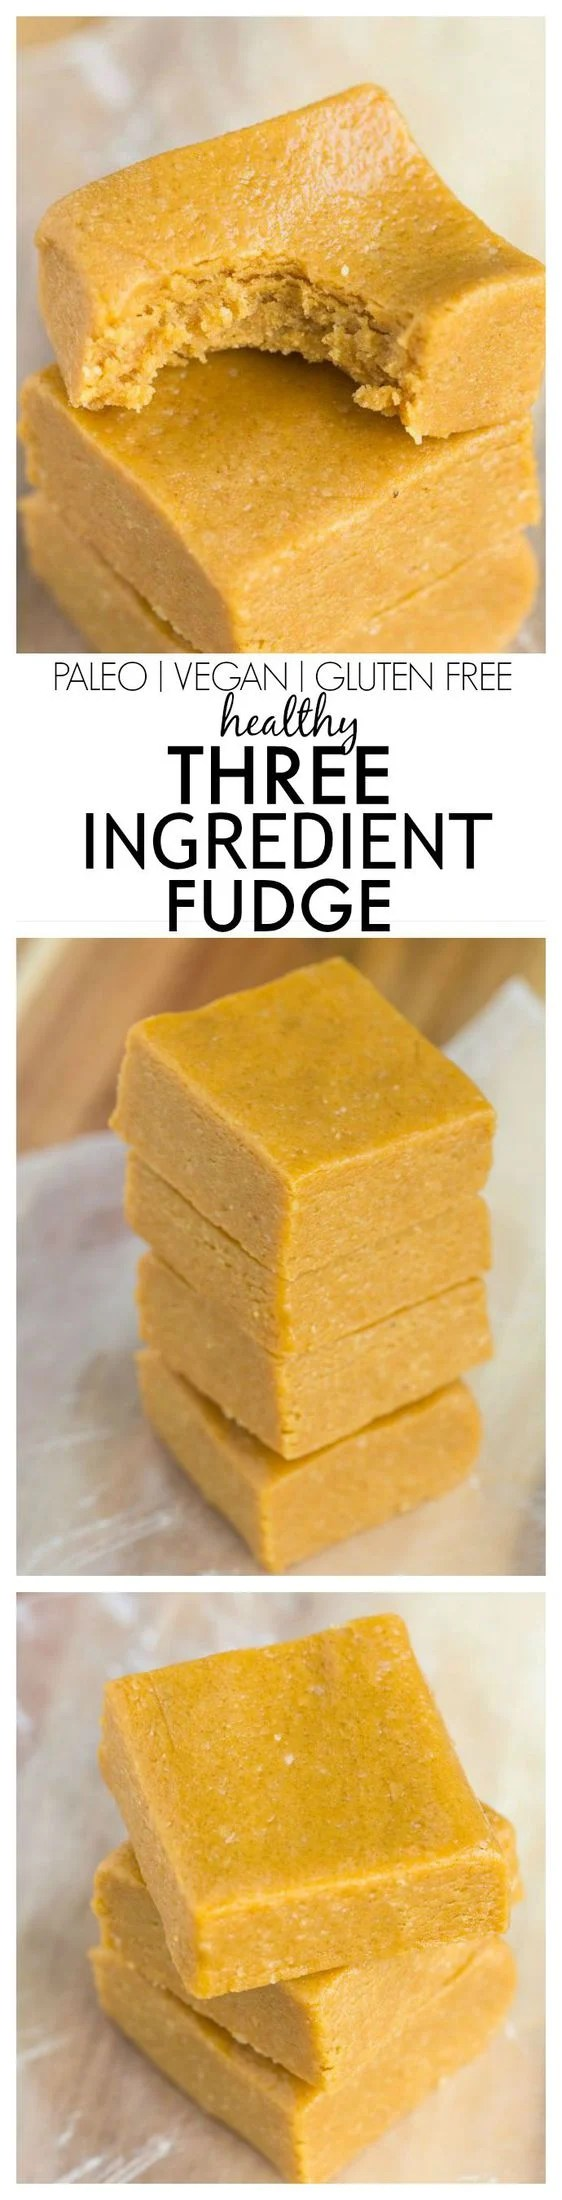 Three Ingredient No Bake Fudge which melts in your mouth and takes 5 minutes! Paleo, vegan and gluten free too!